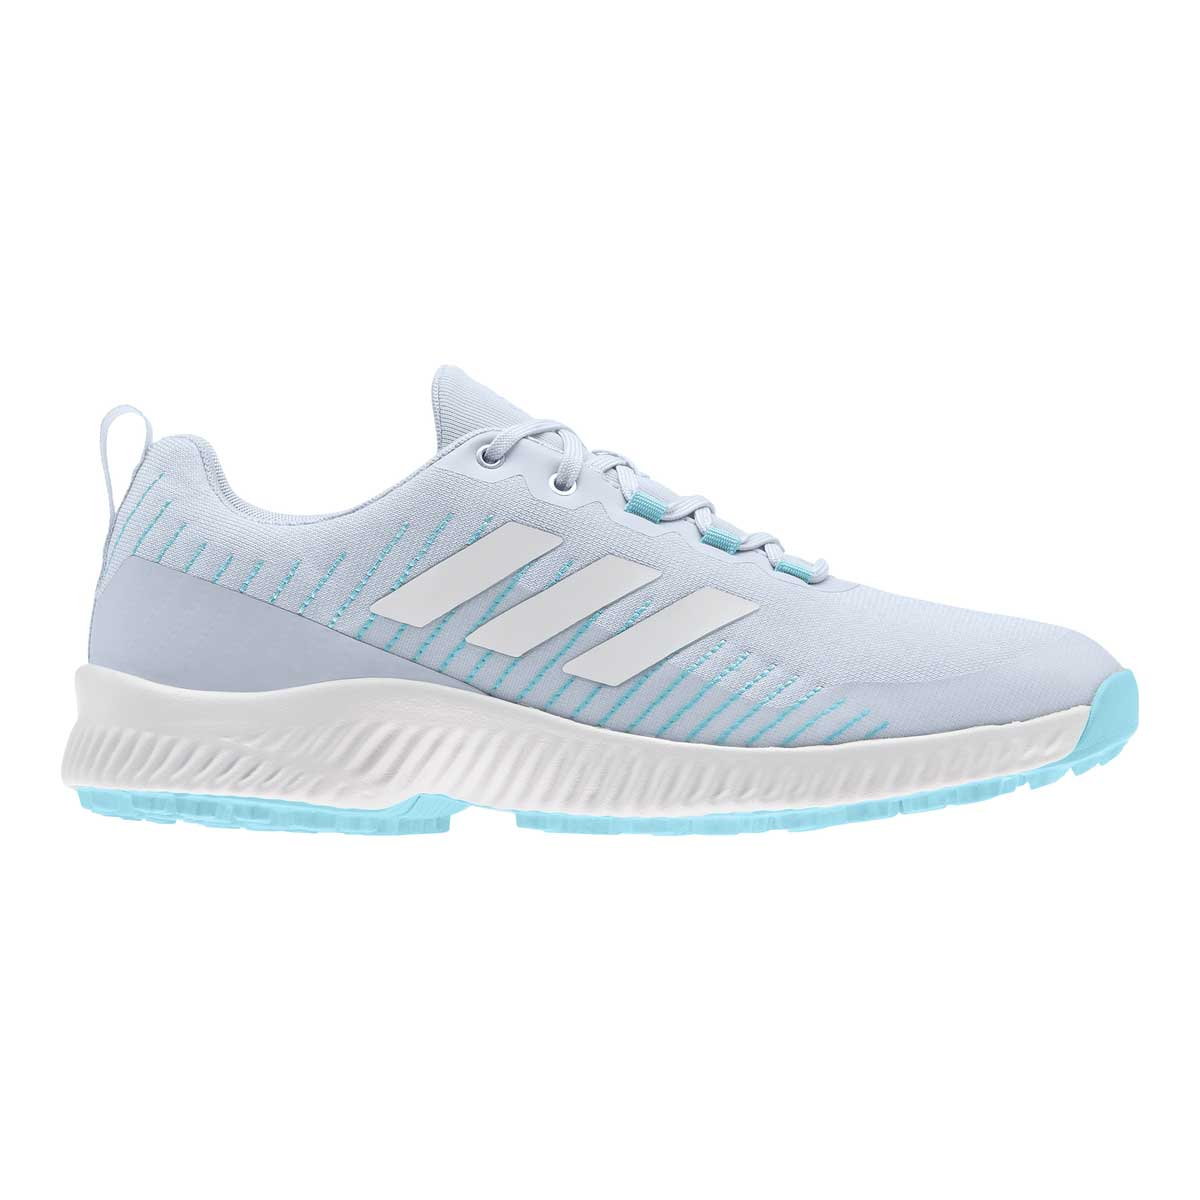 Adidas Women's Response Bounce Spikeless Halo Blue Golf Shoe